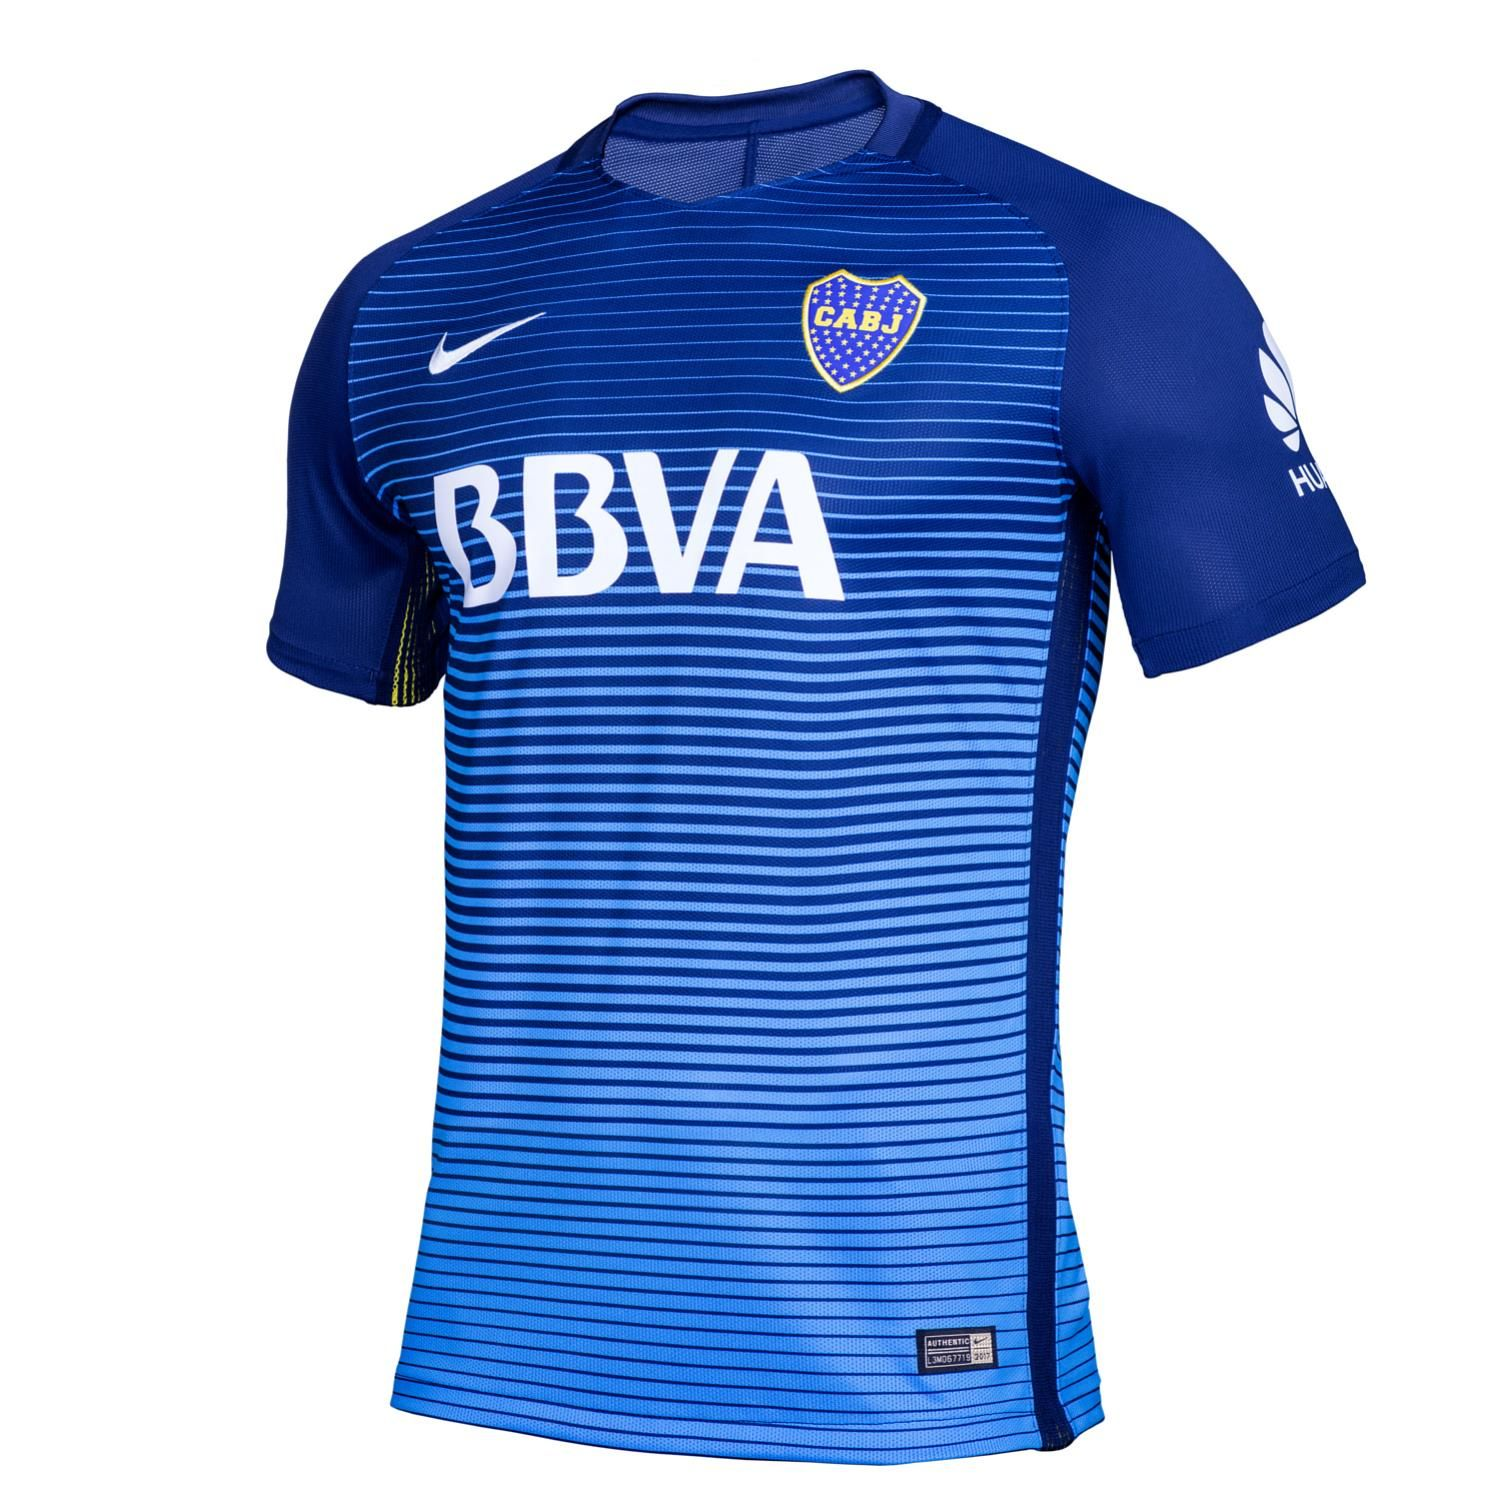 best service 5bb2e ce956 Boca Juniors 16/17 Nike Third Shirt | 16/17 Kits | Football ...